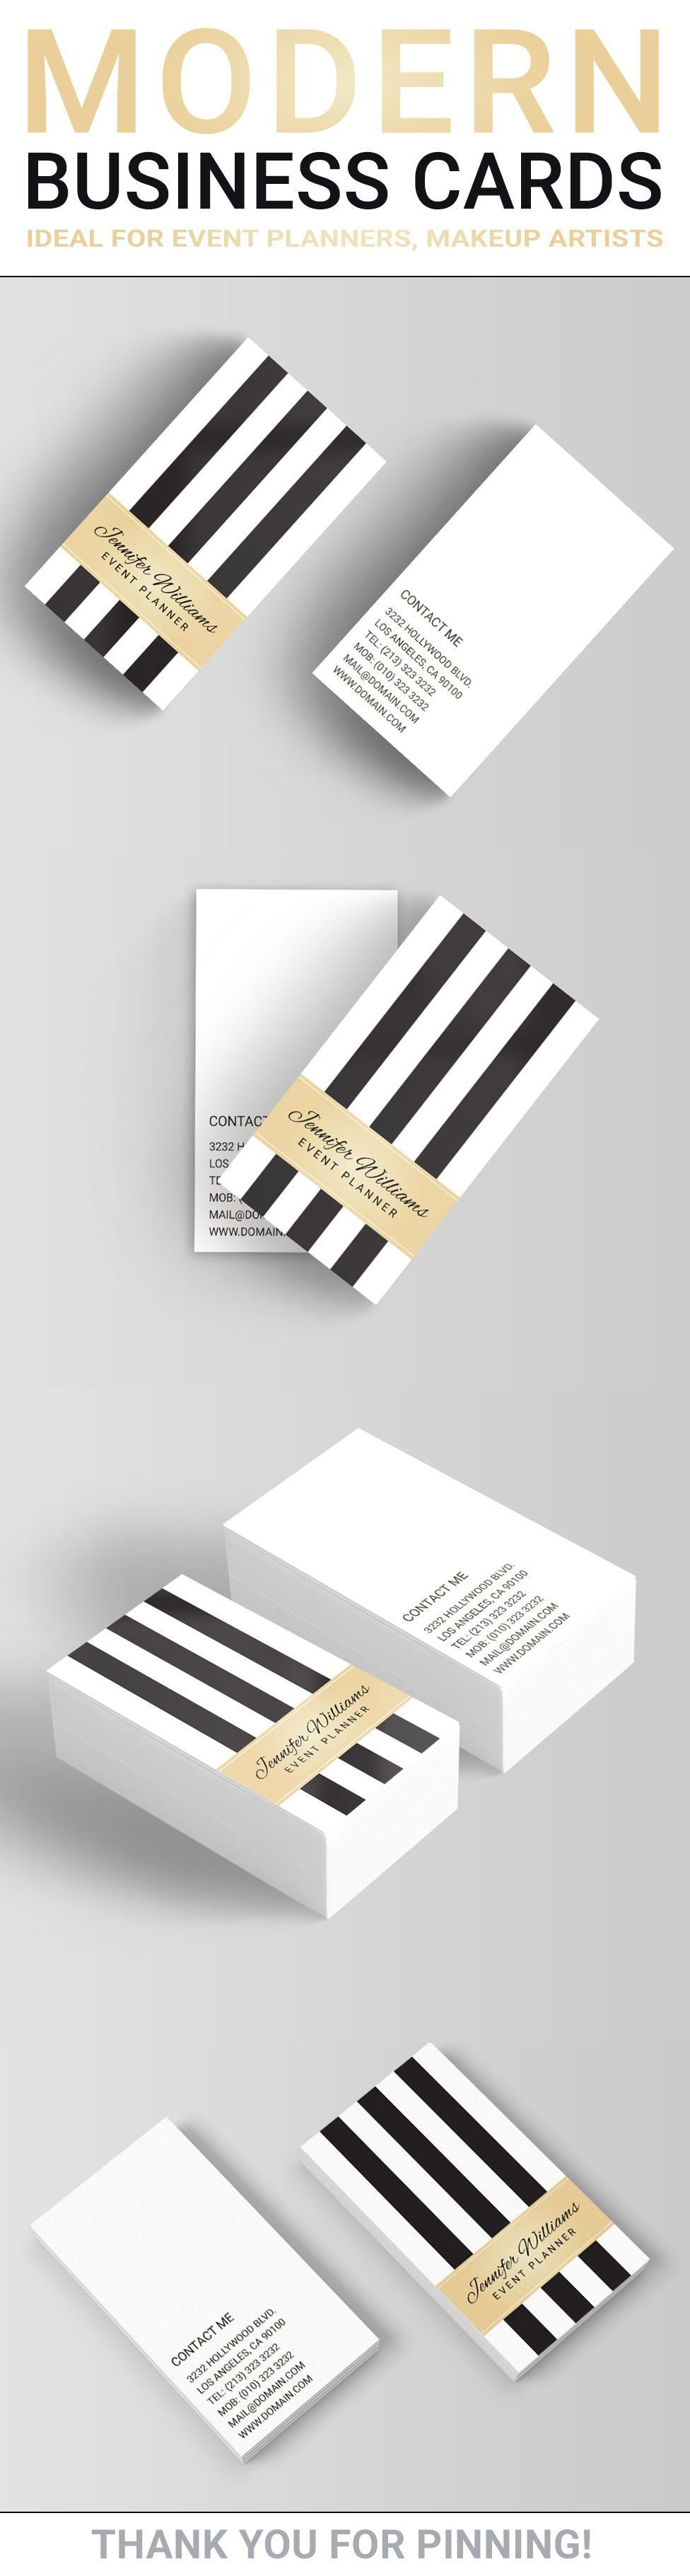 Black And White Stripe Business Card The Design Shows A Faux Golden L In 2020 Event Planner Business Card Makeup Artist Business Cards Templates Modern Business Cards